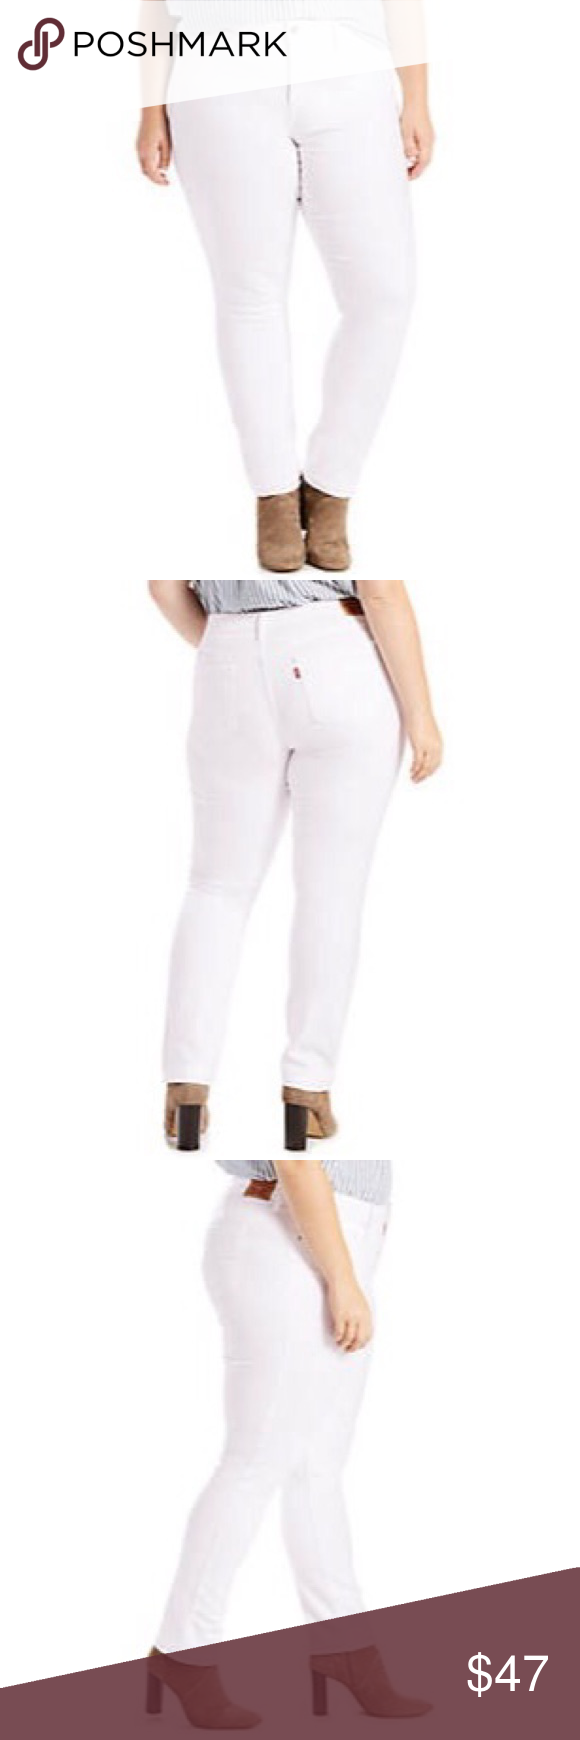 2019 year for women- 10 plus amazing sized picks for spring